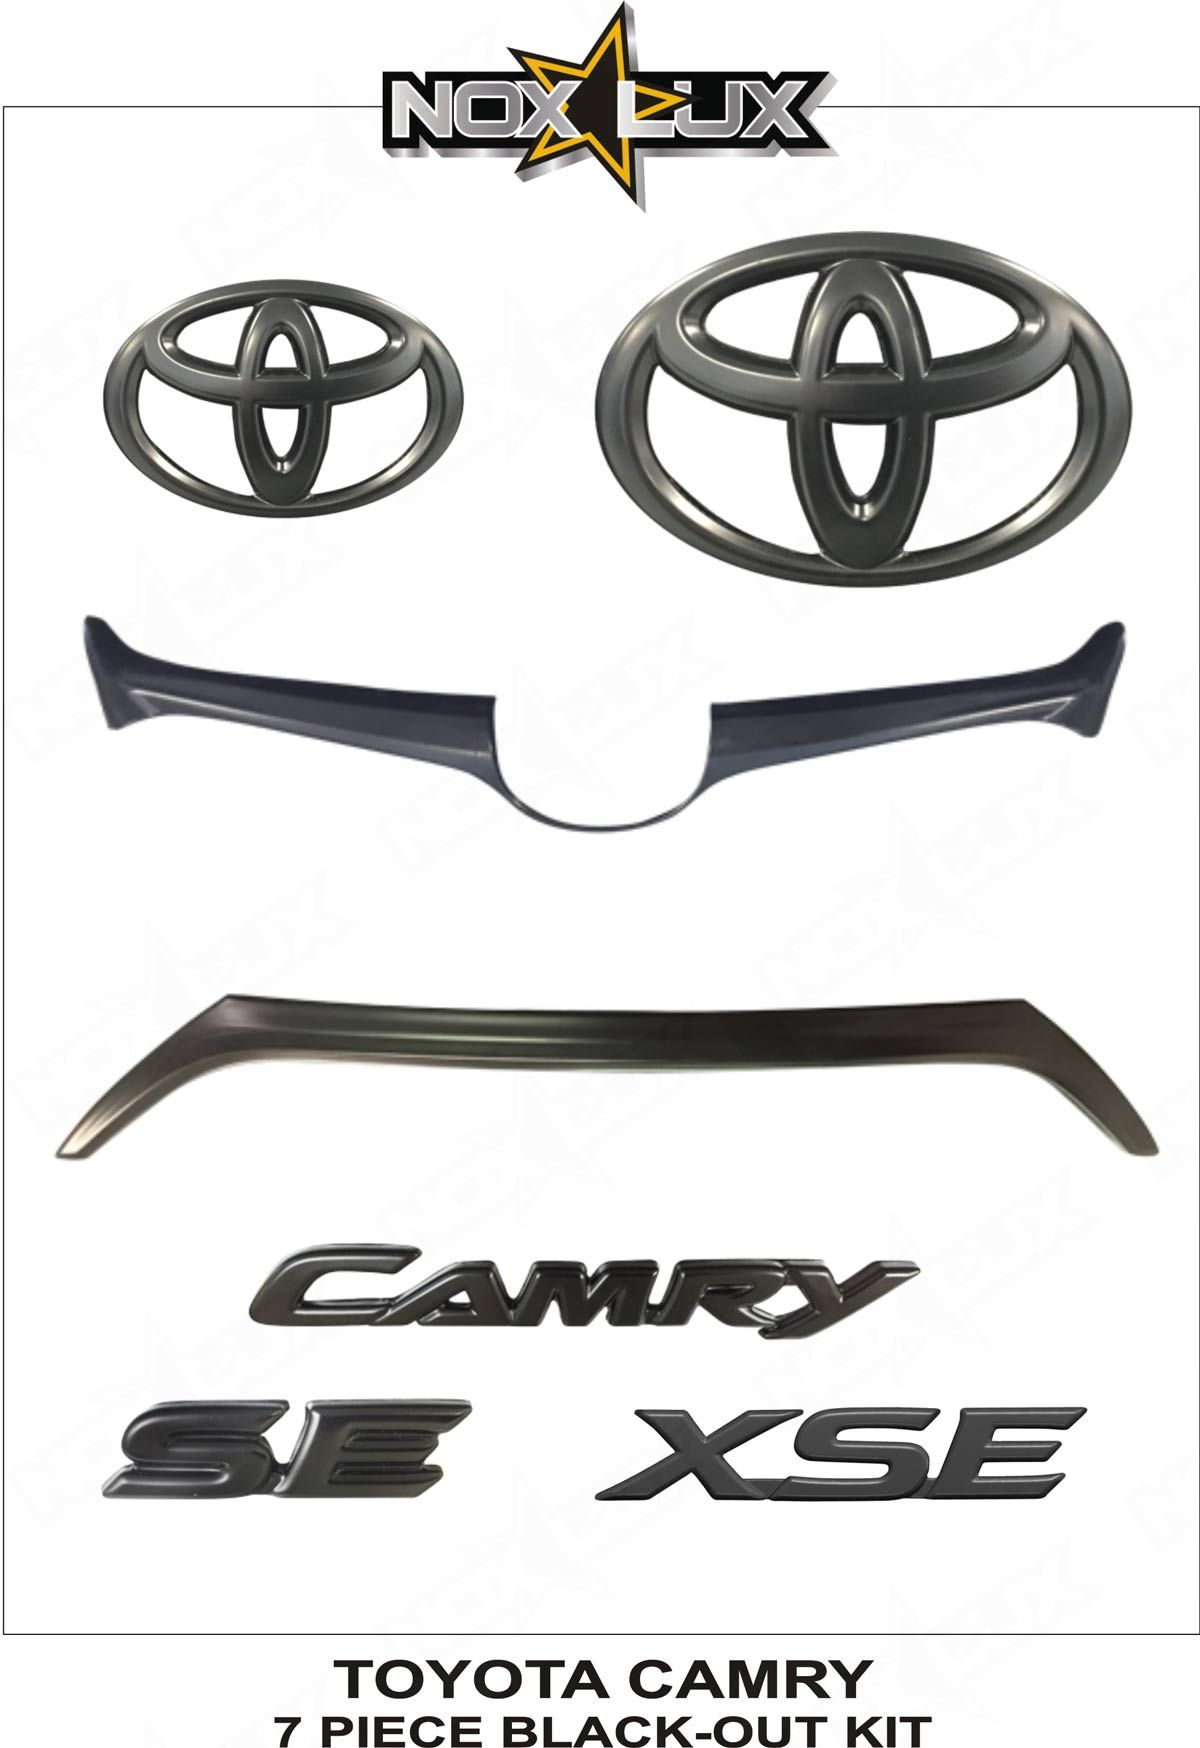 Camry Se Xse Gloss Black Out Kit